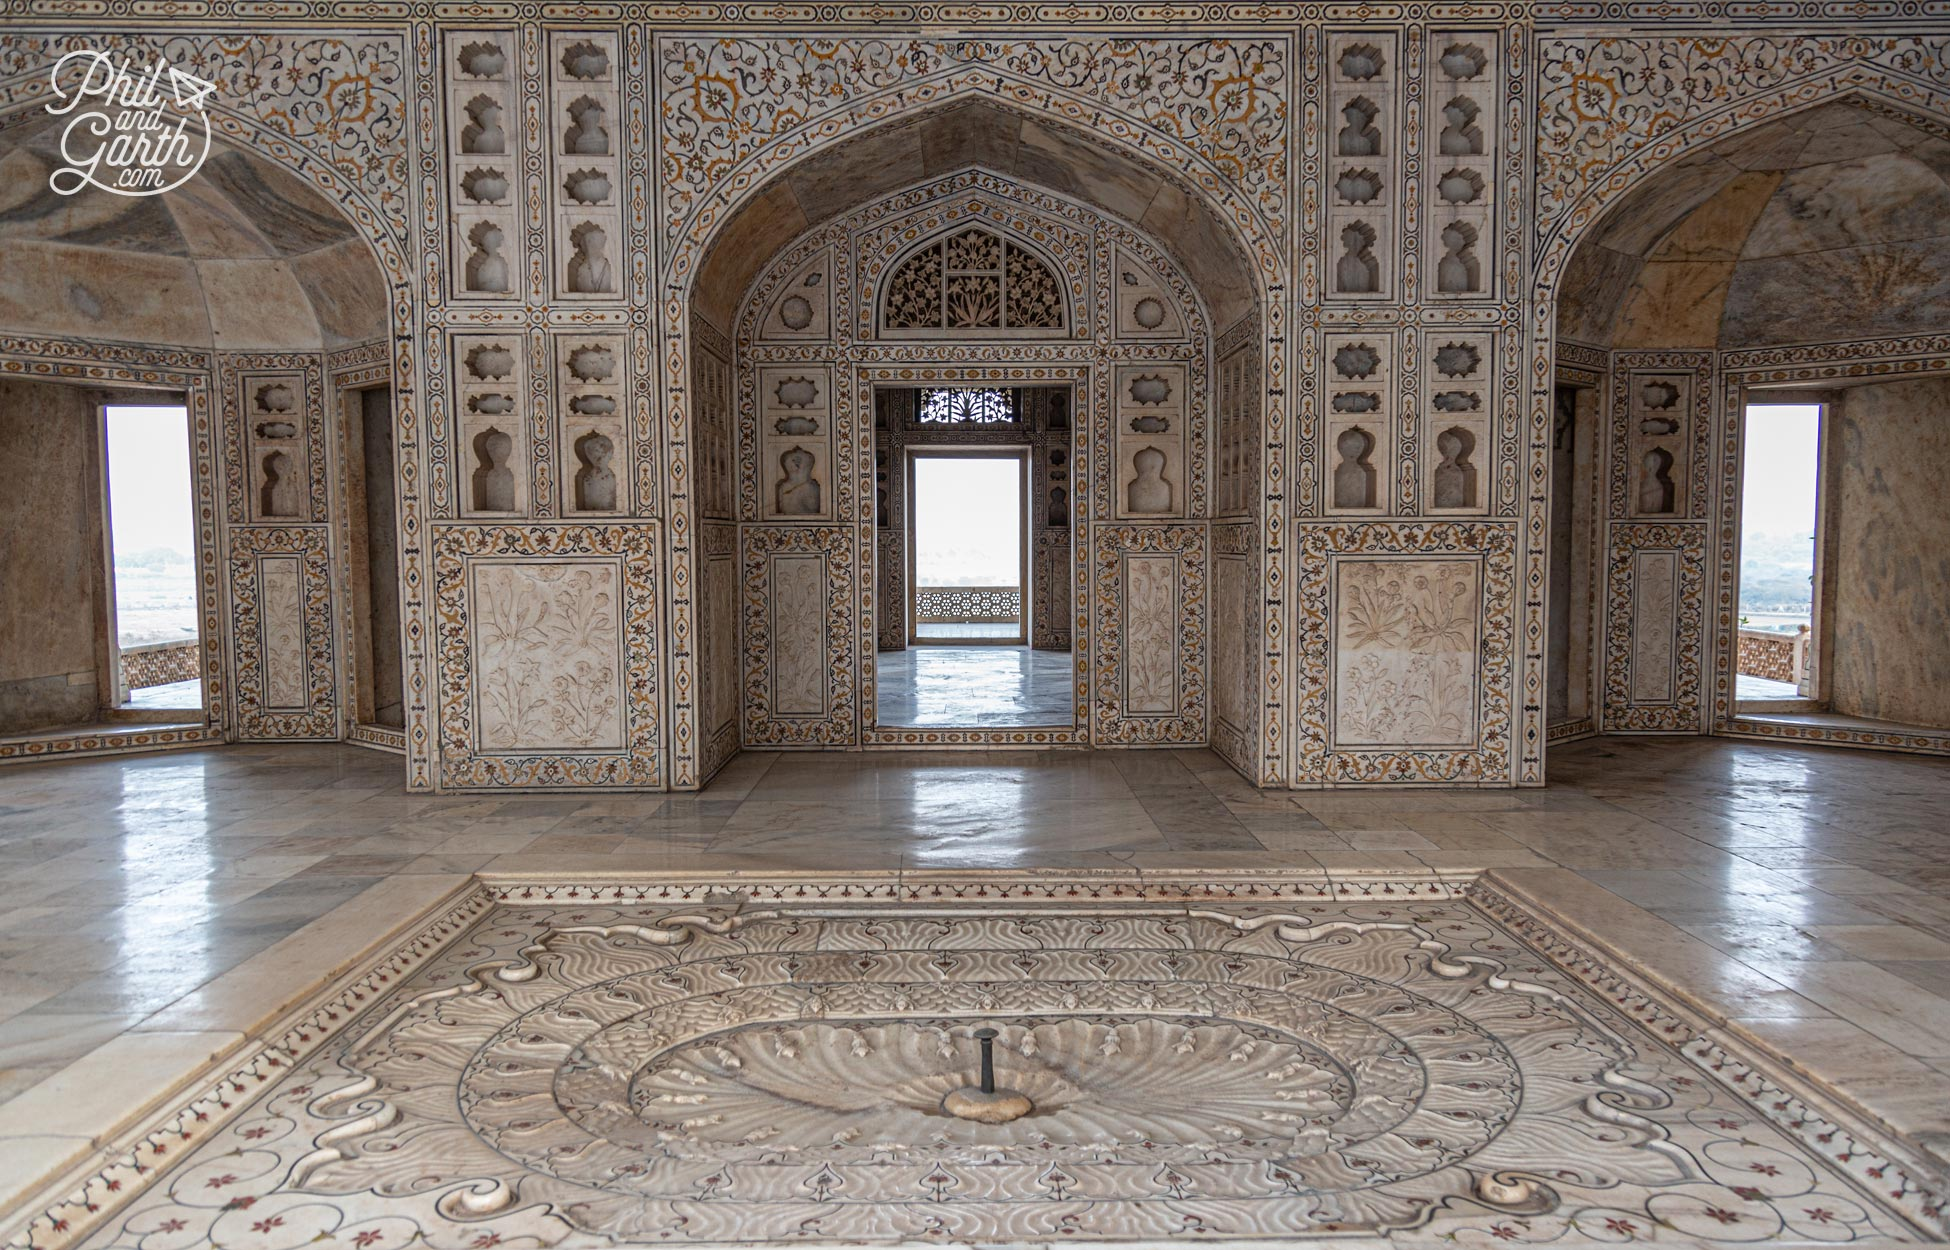 The incredible detail inside the Musamman Burj, part of the Khas Mahal Palace